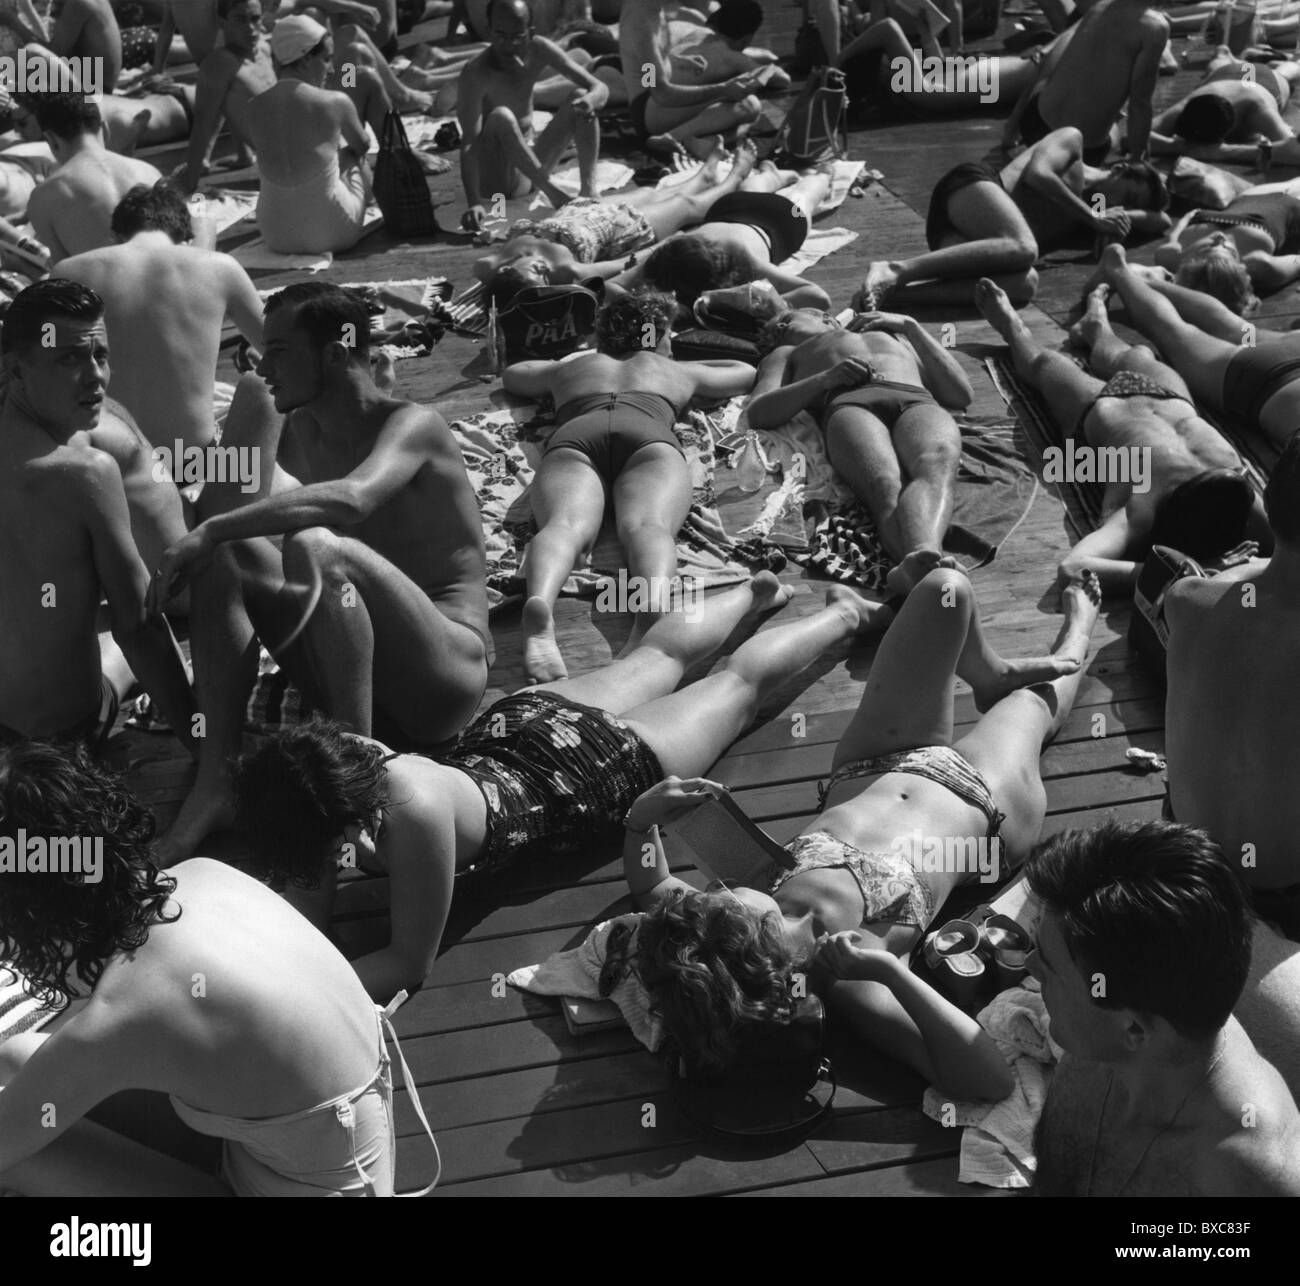 tourism, leisure time, sun bathing, seaside resort, England, 1960s, , Additional-Rights-Clearences-NA - Stock Image